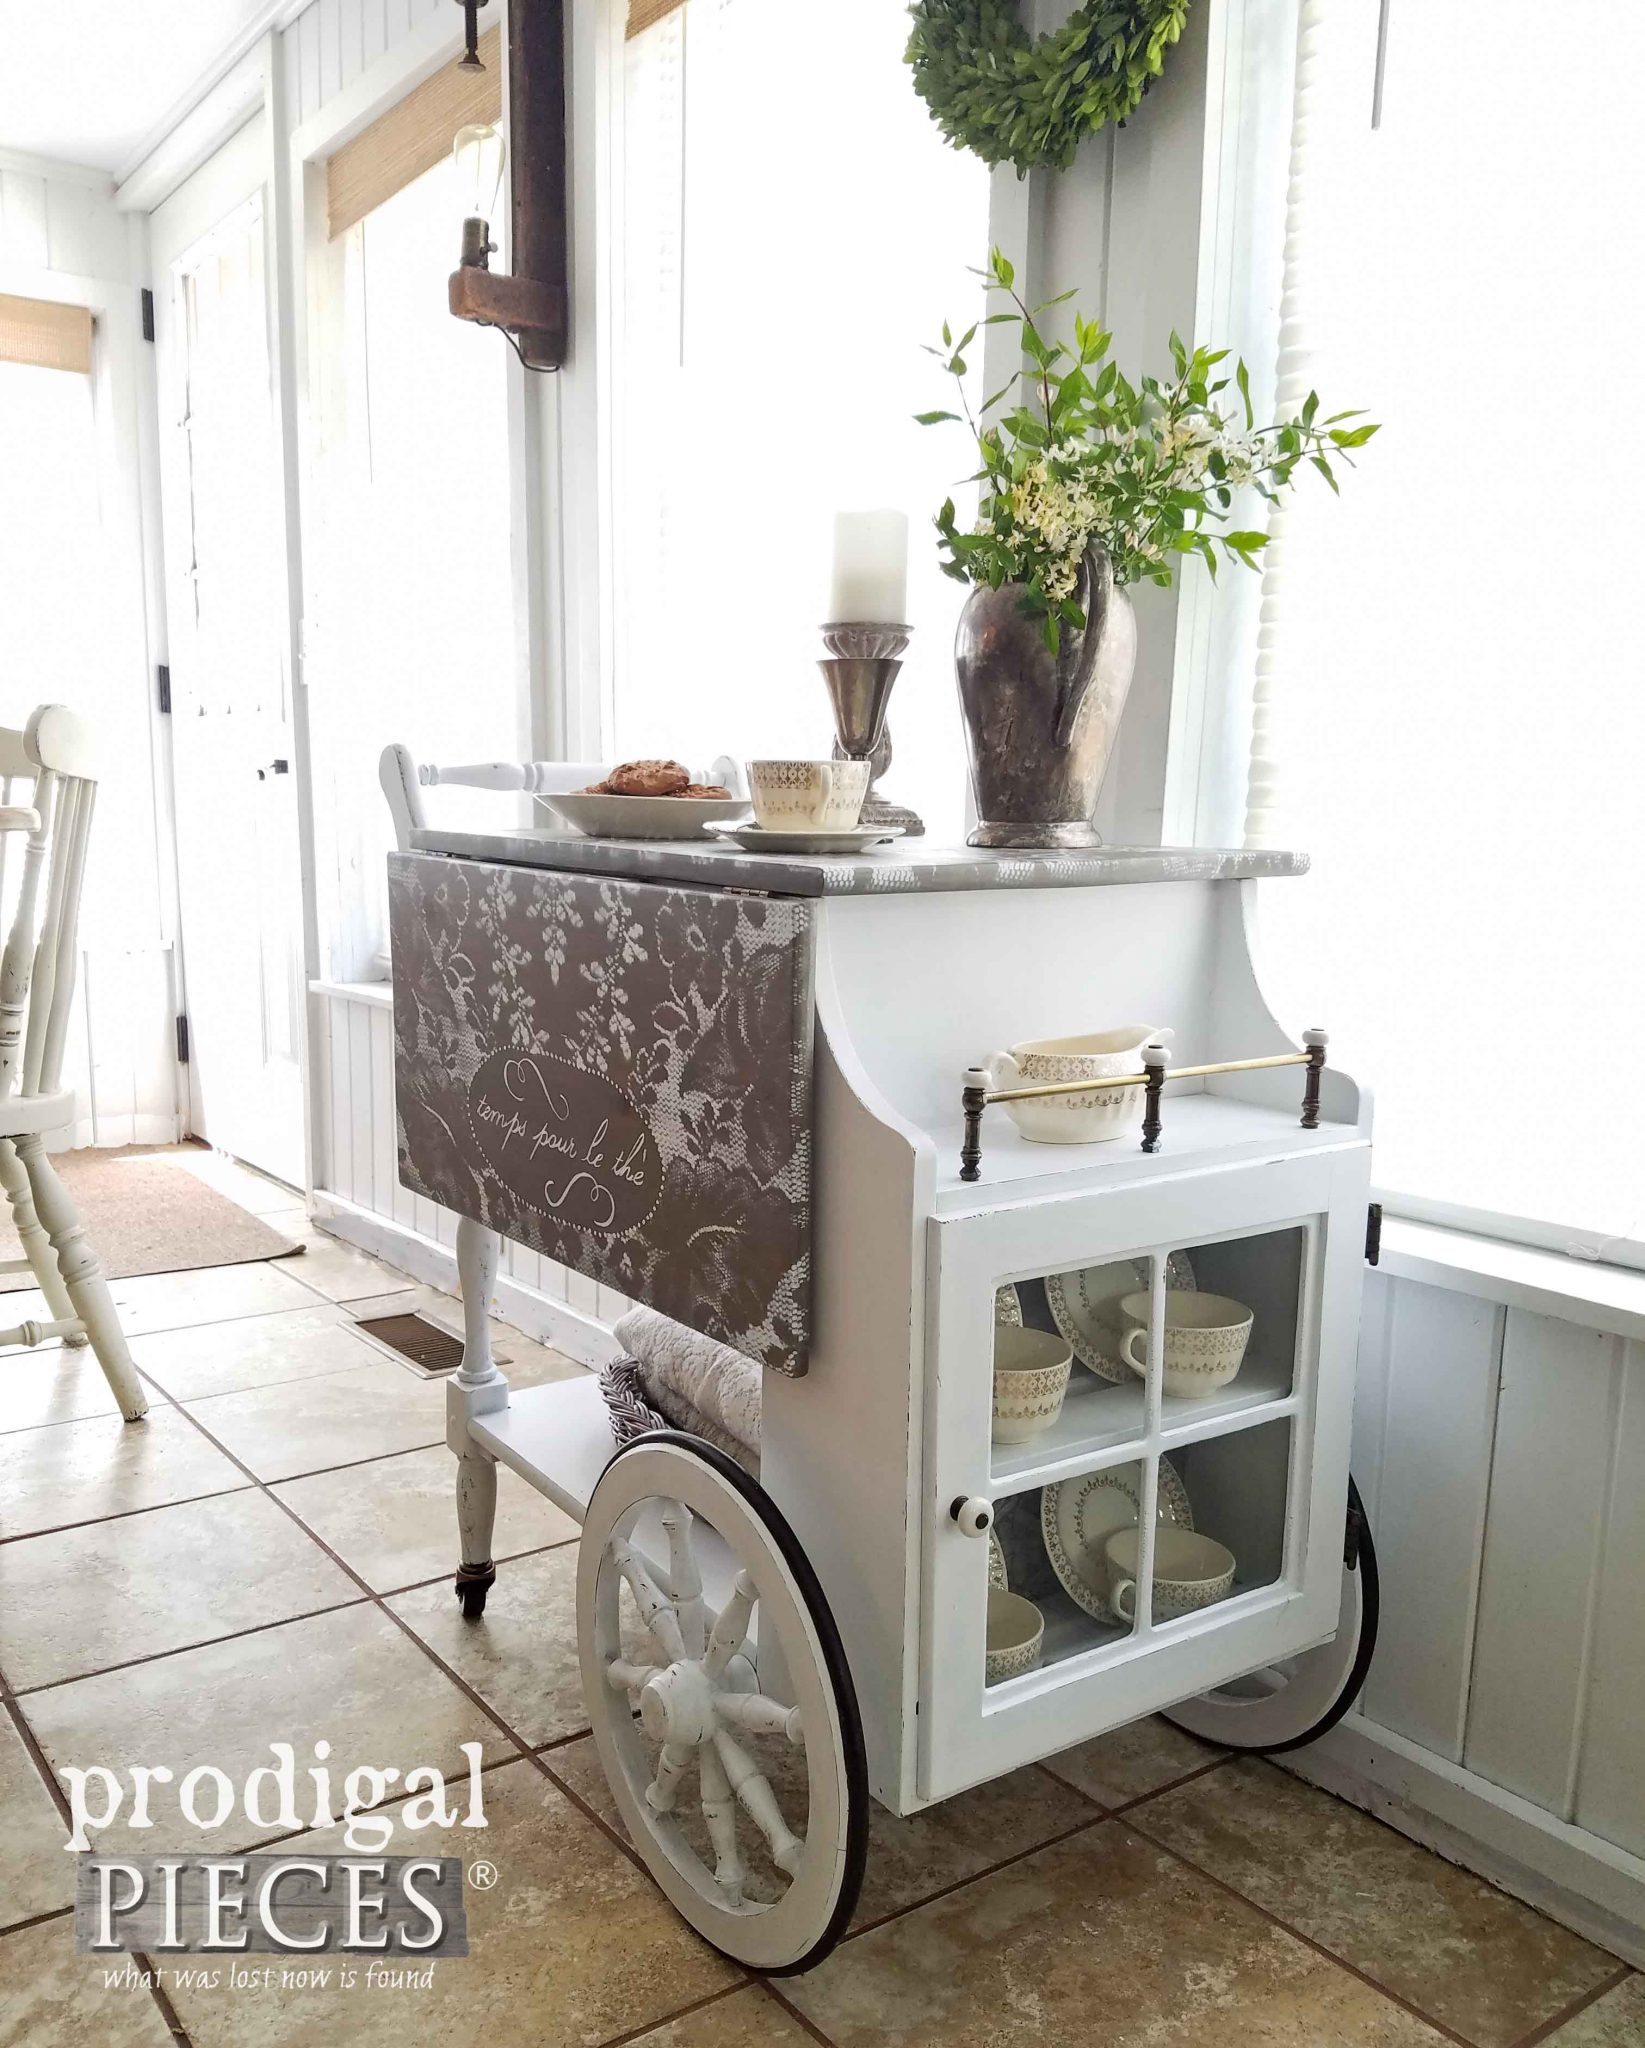 Vintage tea cart gets refreshed with a French Flair by Prodigal Pieces | prodigalpieces.com